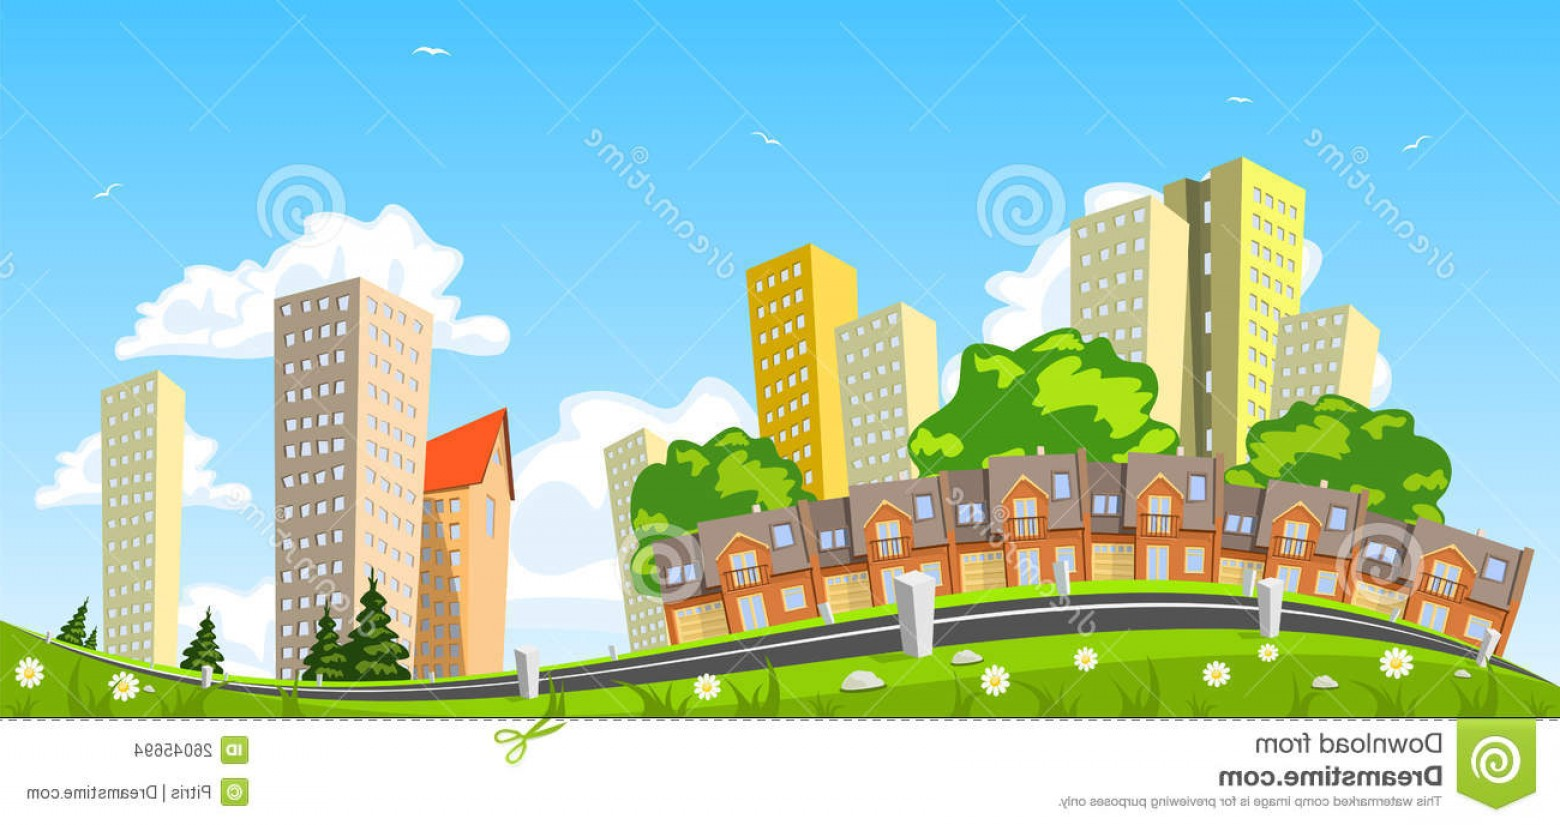 City Vector: Stock Images Abstract Vector City Row Building Image